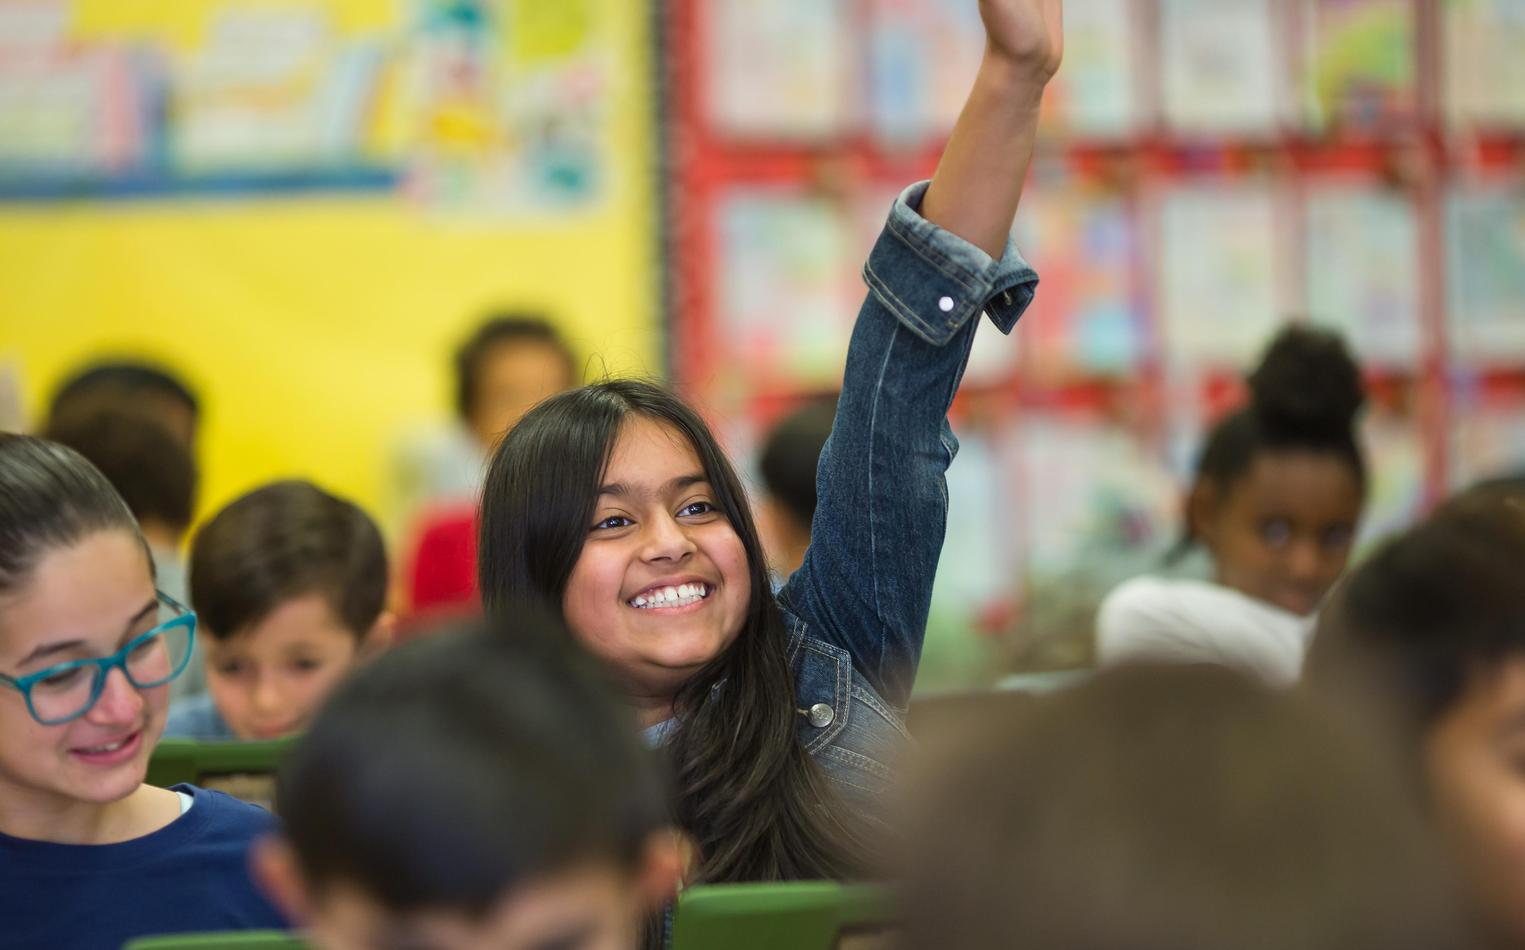 Middle school student raising her hand in class.